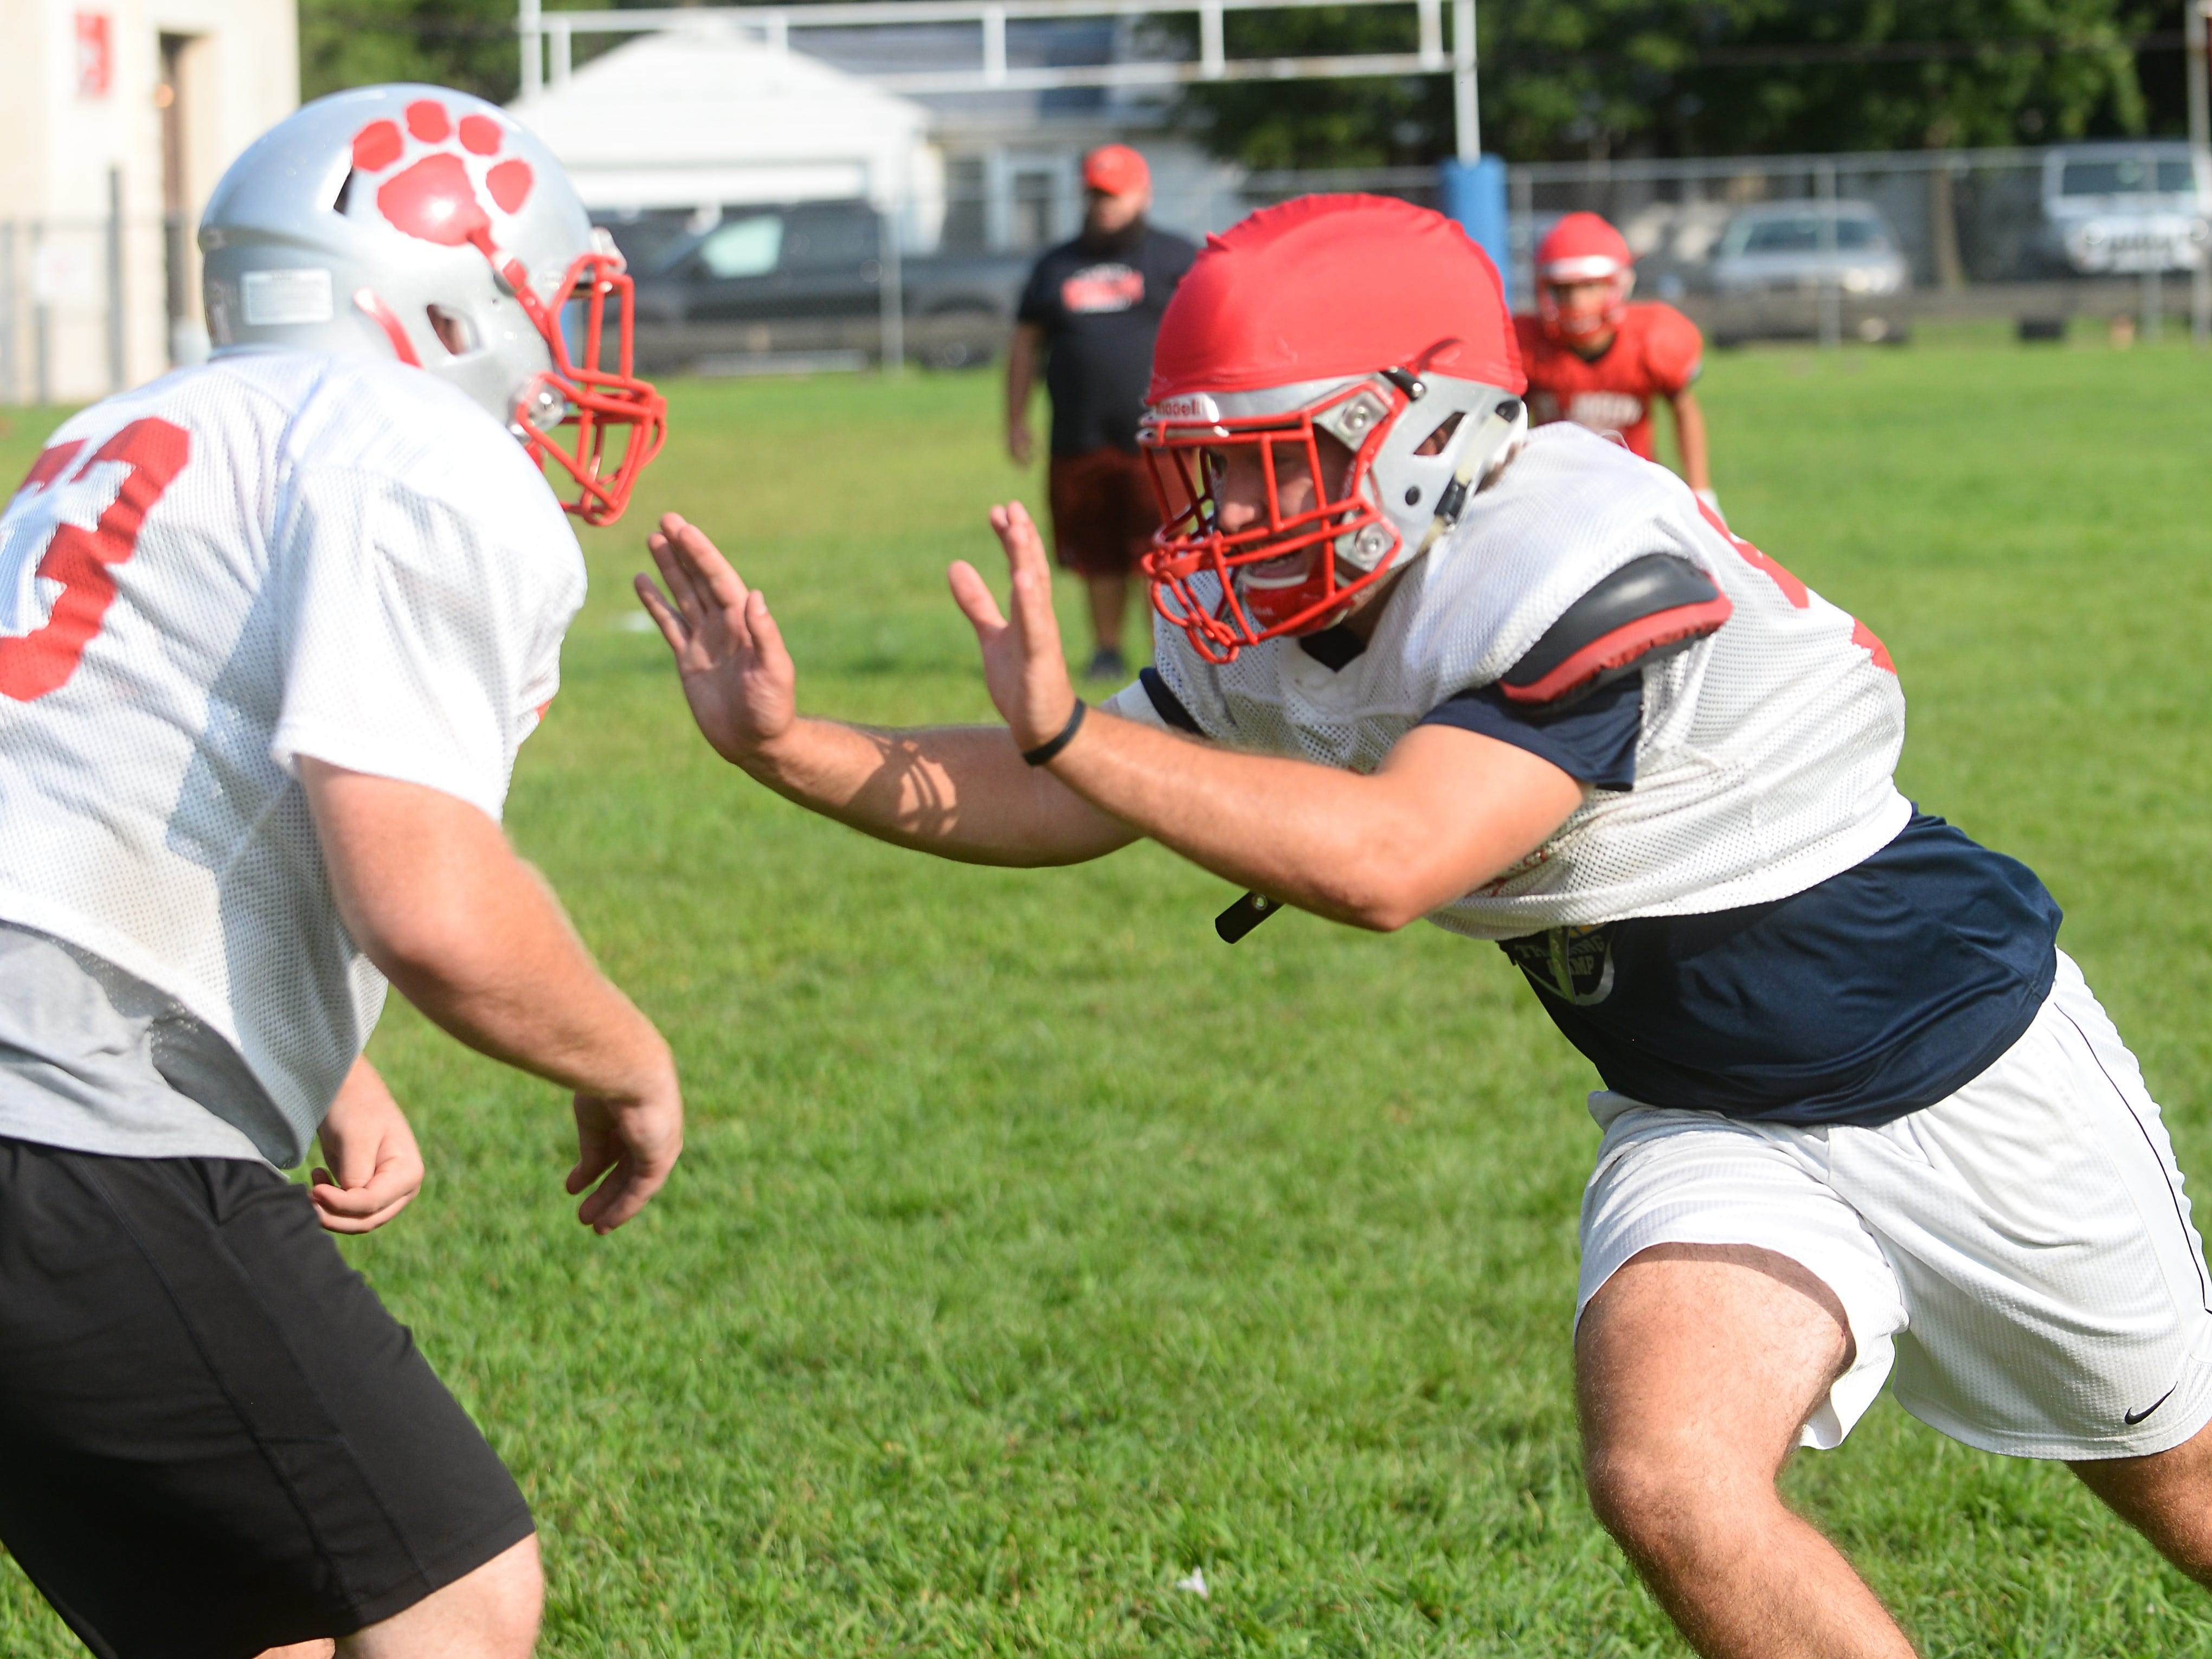 St. Joseph looks to bring another state title back to Hammonton following a 12-0 season in 2017. The Wildcats run through offensive and defensive conditioning drills during practice on Wednesday, August 23.